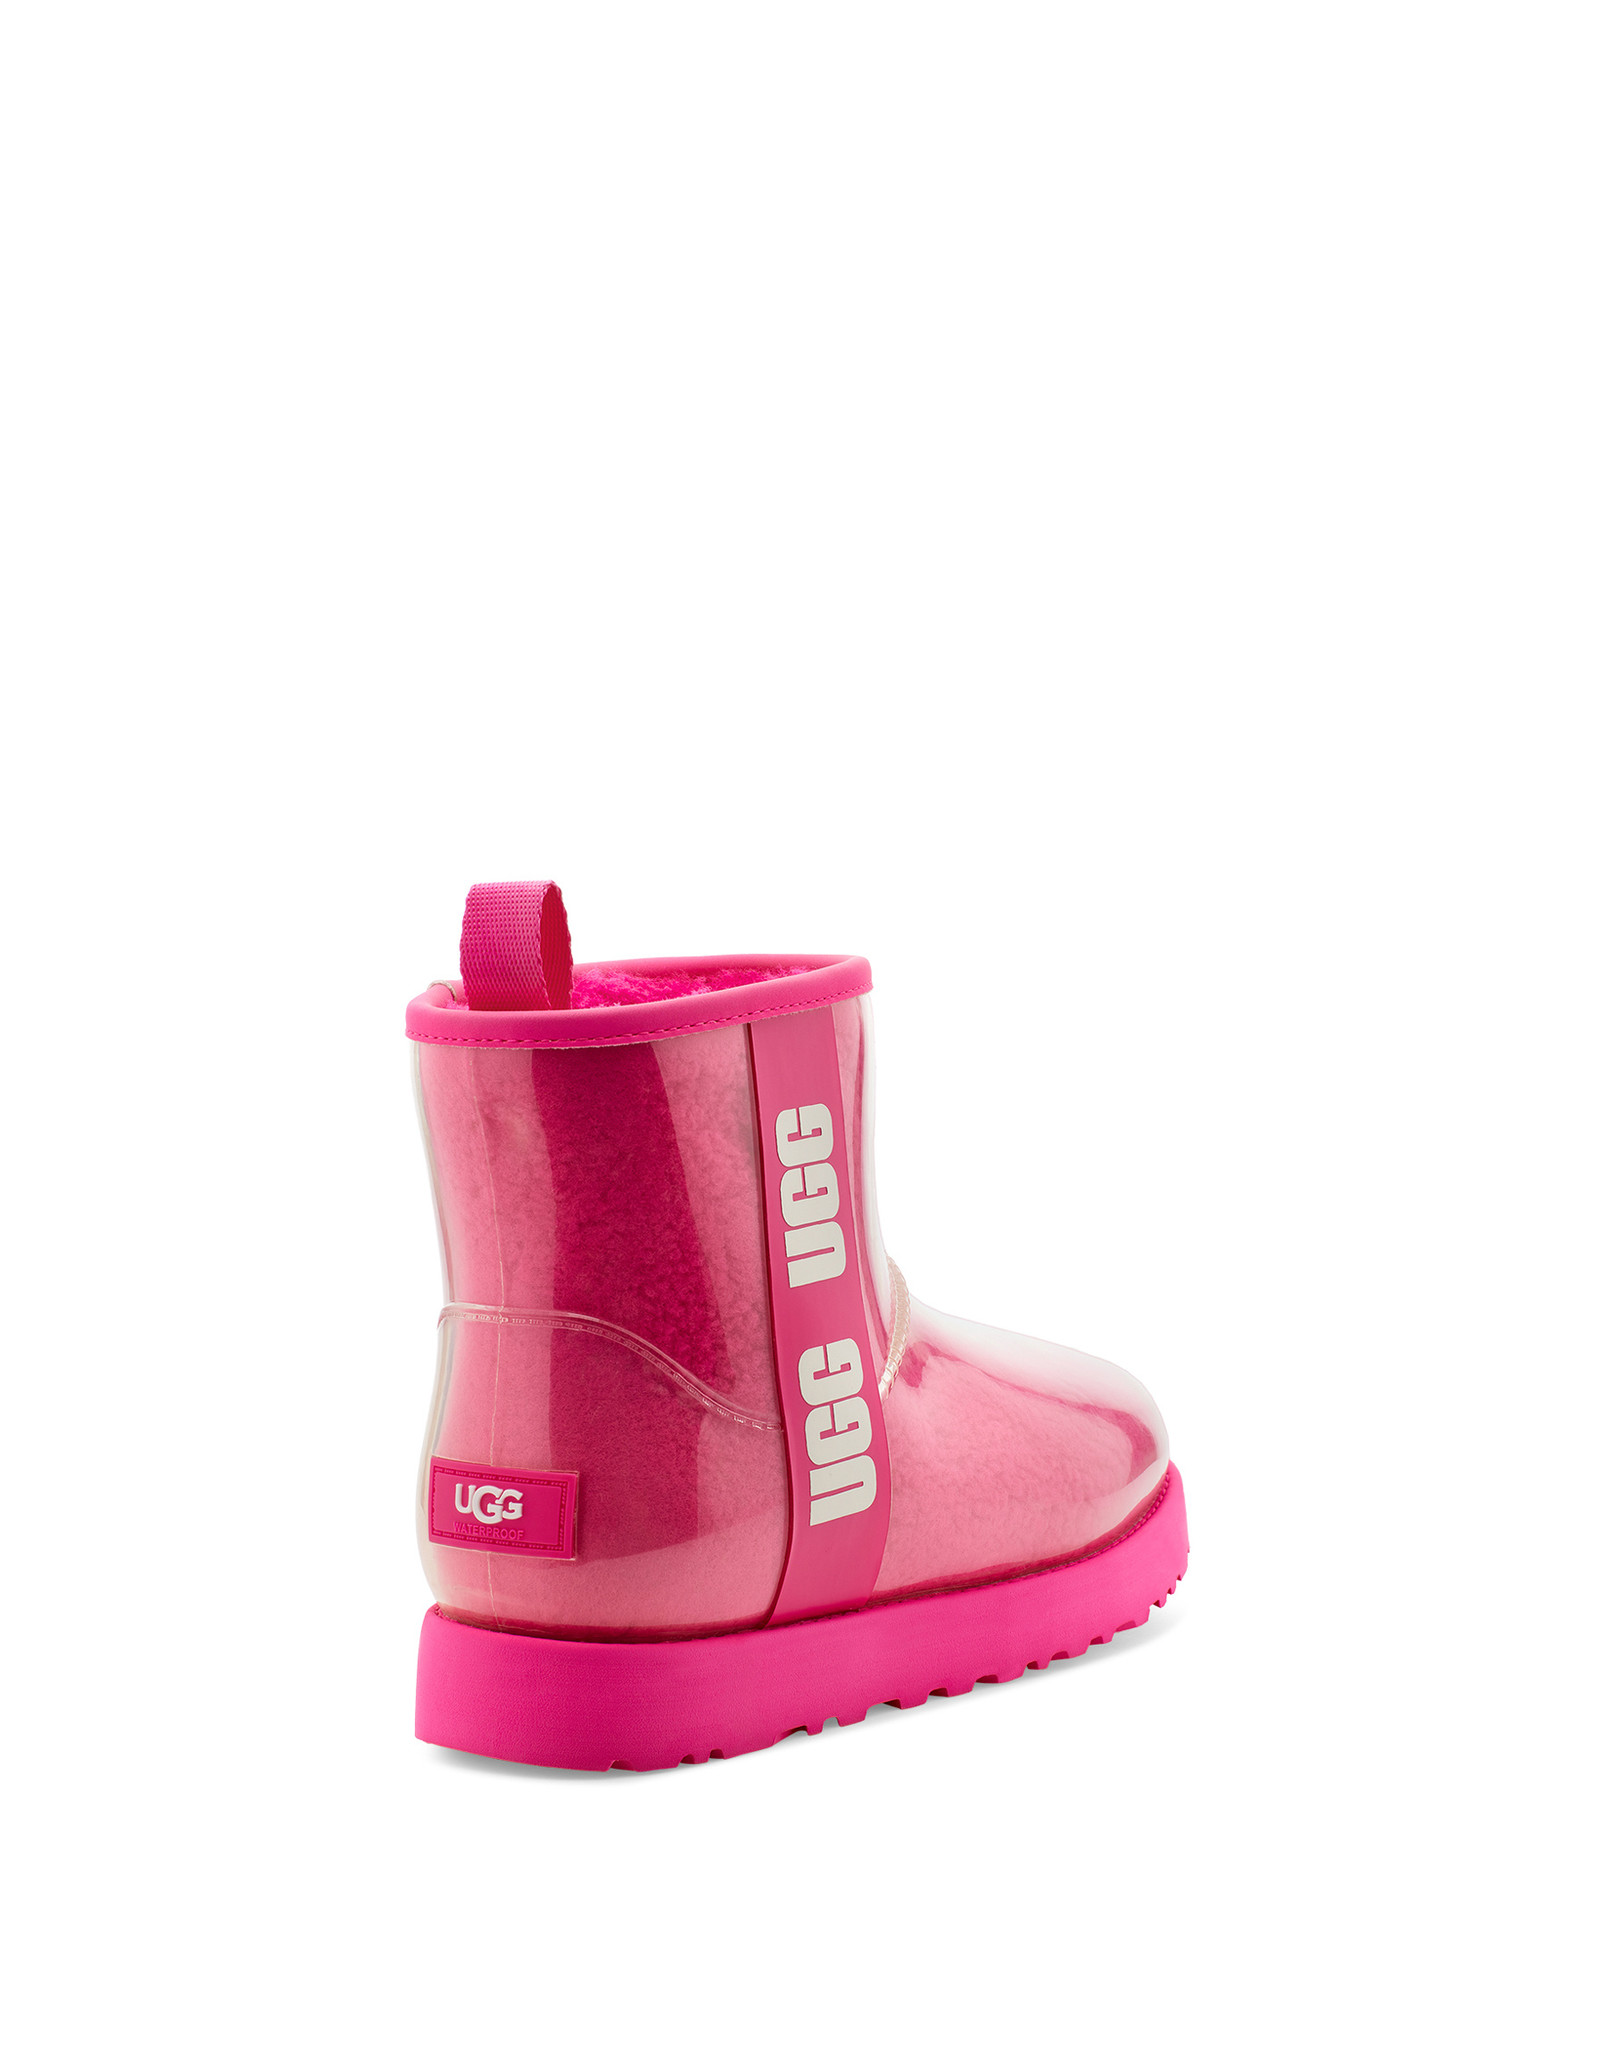 UGG WOMEN'S CLASSIC CLEAR MINI BOOT-ROCK ROSE